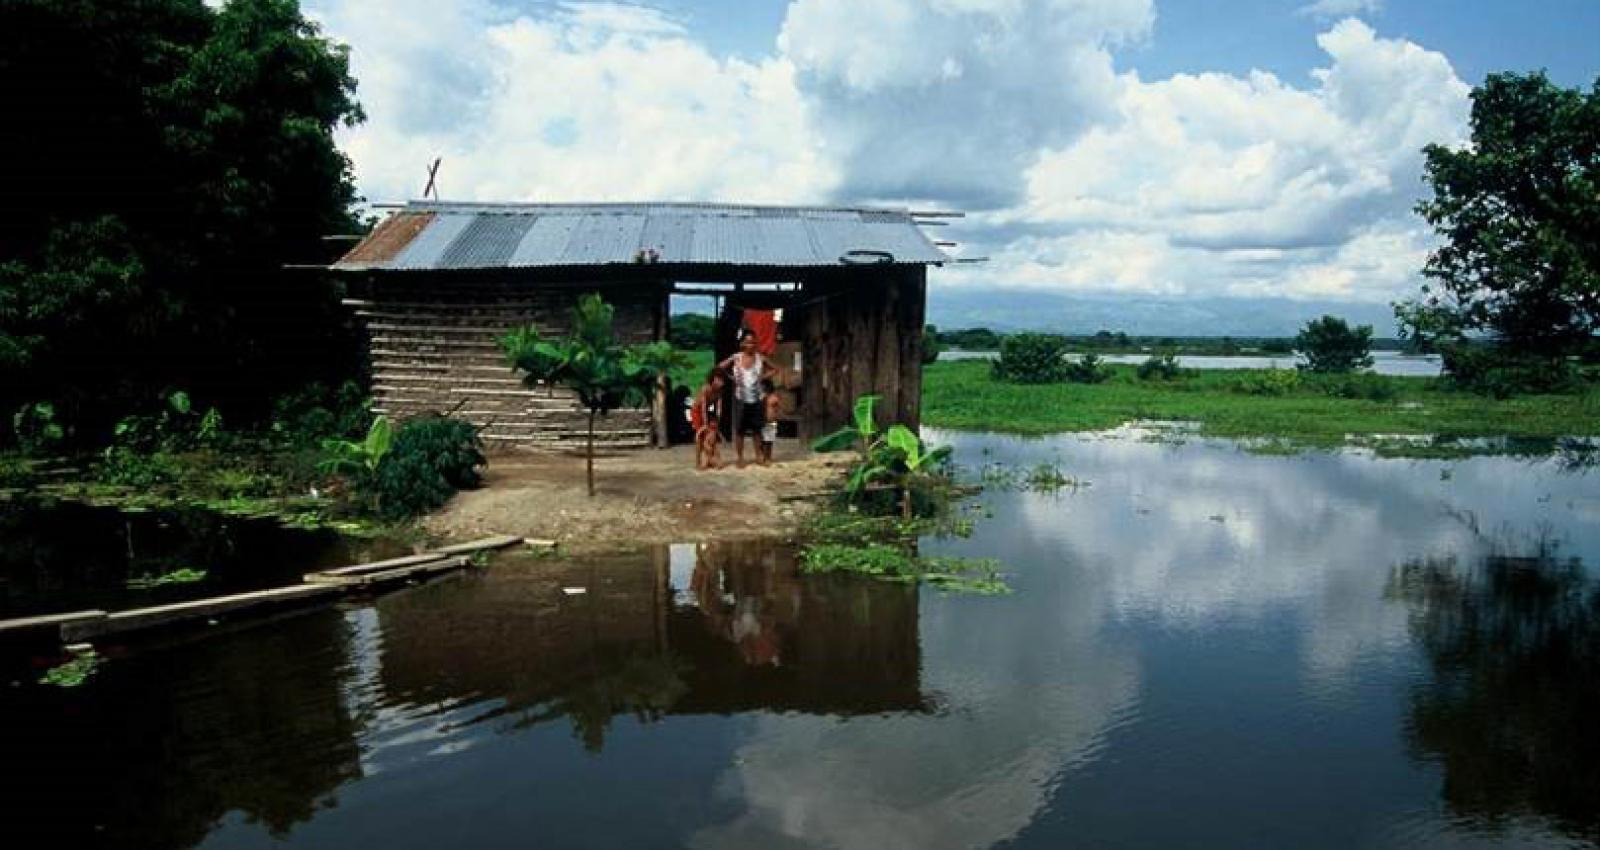 Colombian family whose home floods every year creating hazardous living conditions.